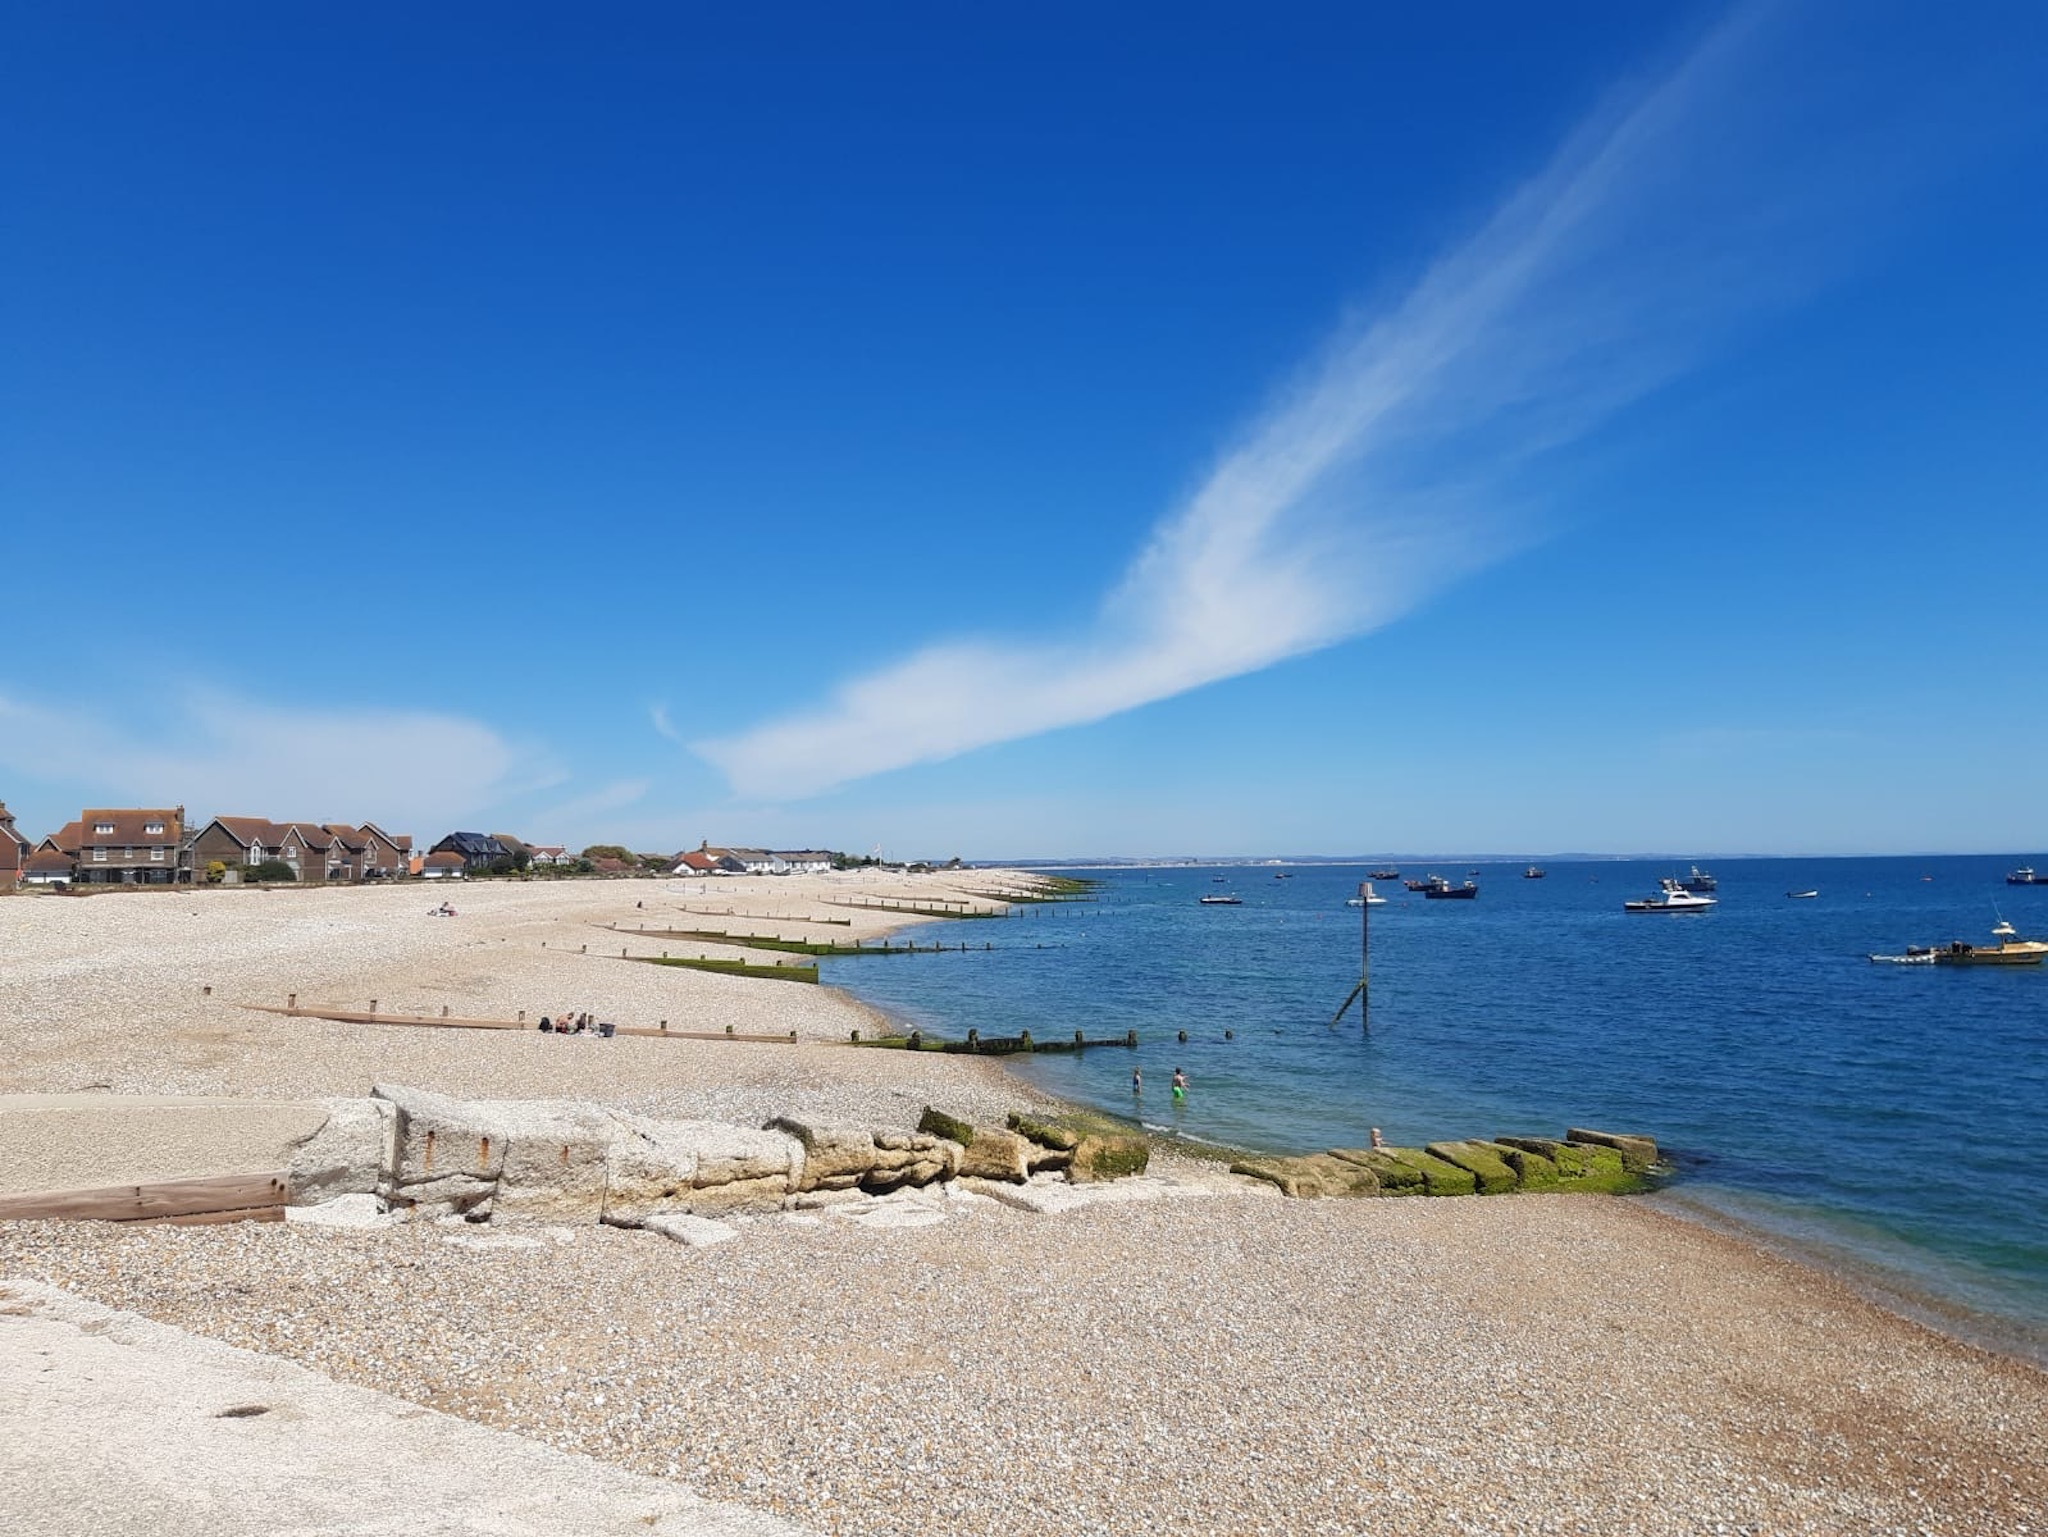 Day trip diary: Selsey